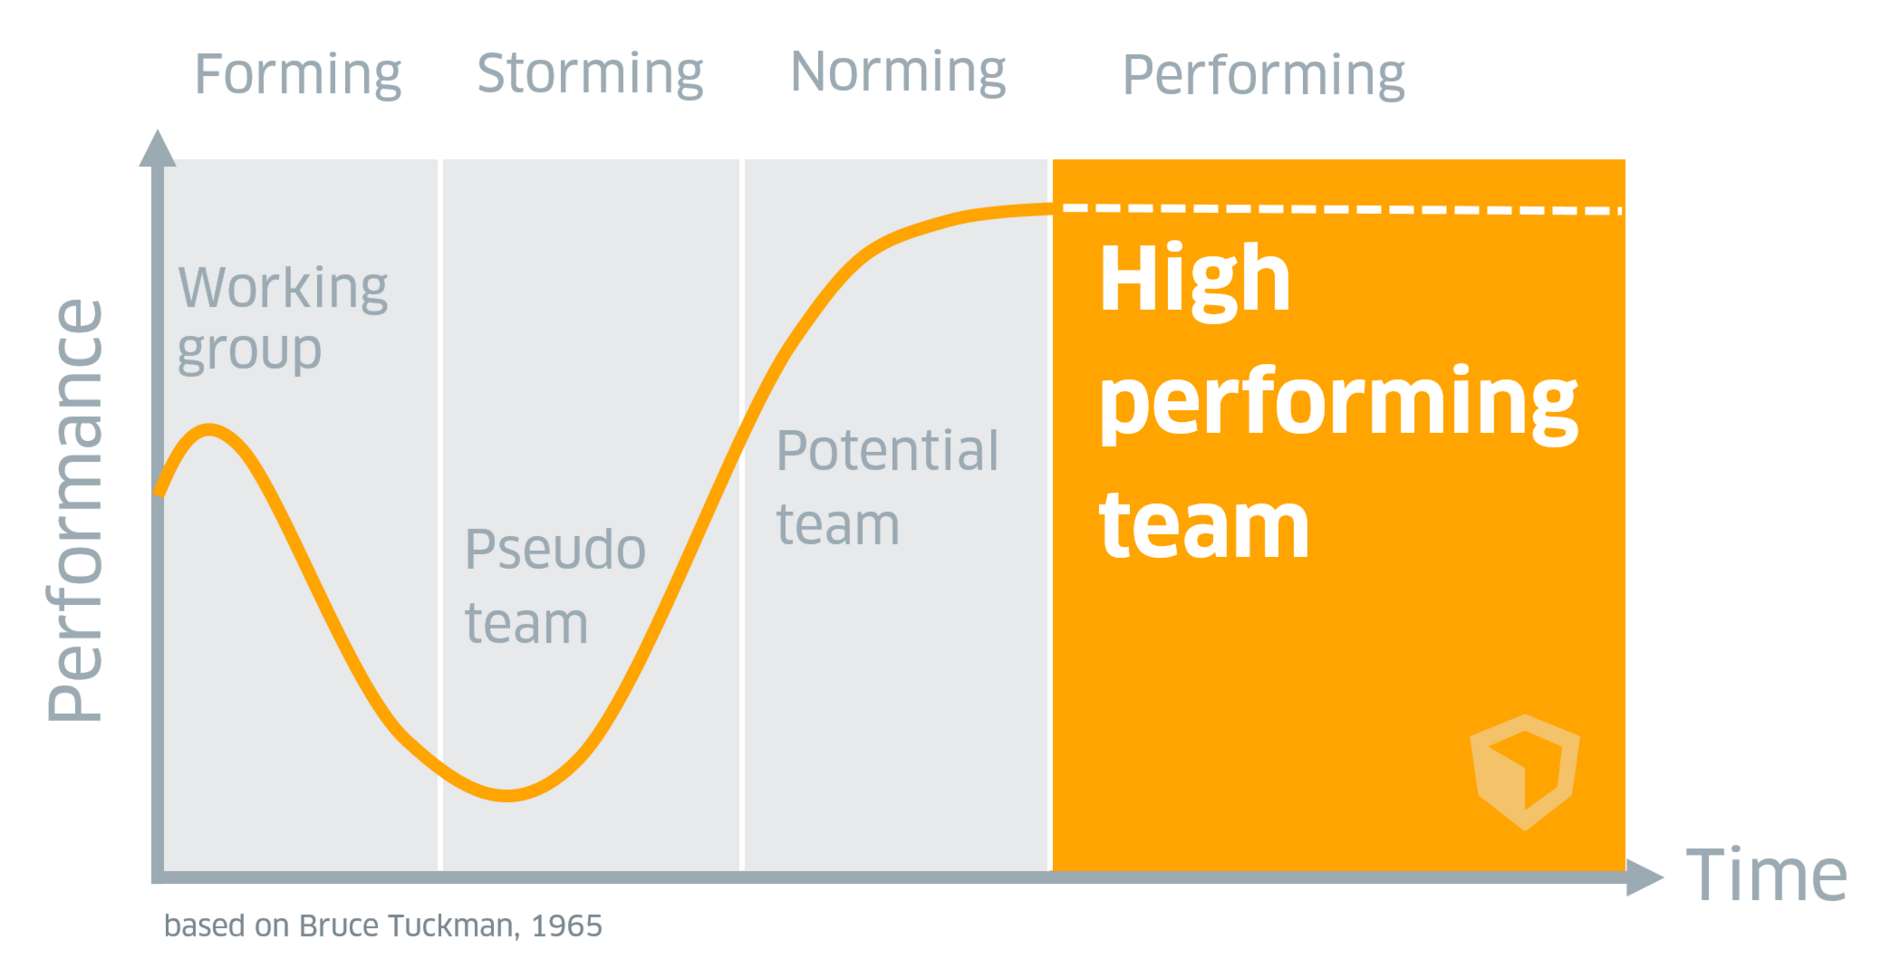 Tuckman's Team Development Model: Forming, Storming, Norming, Performing